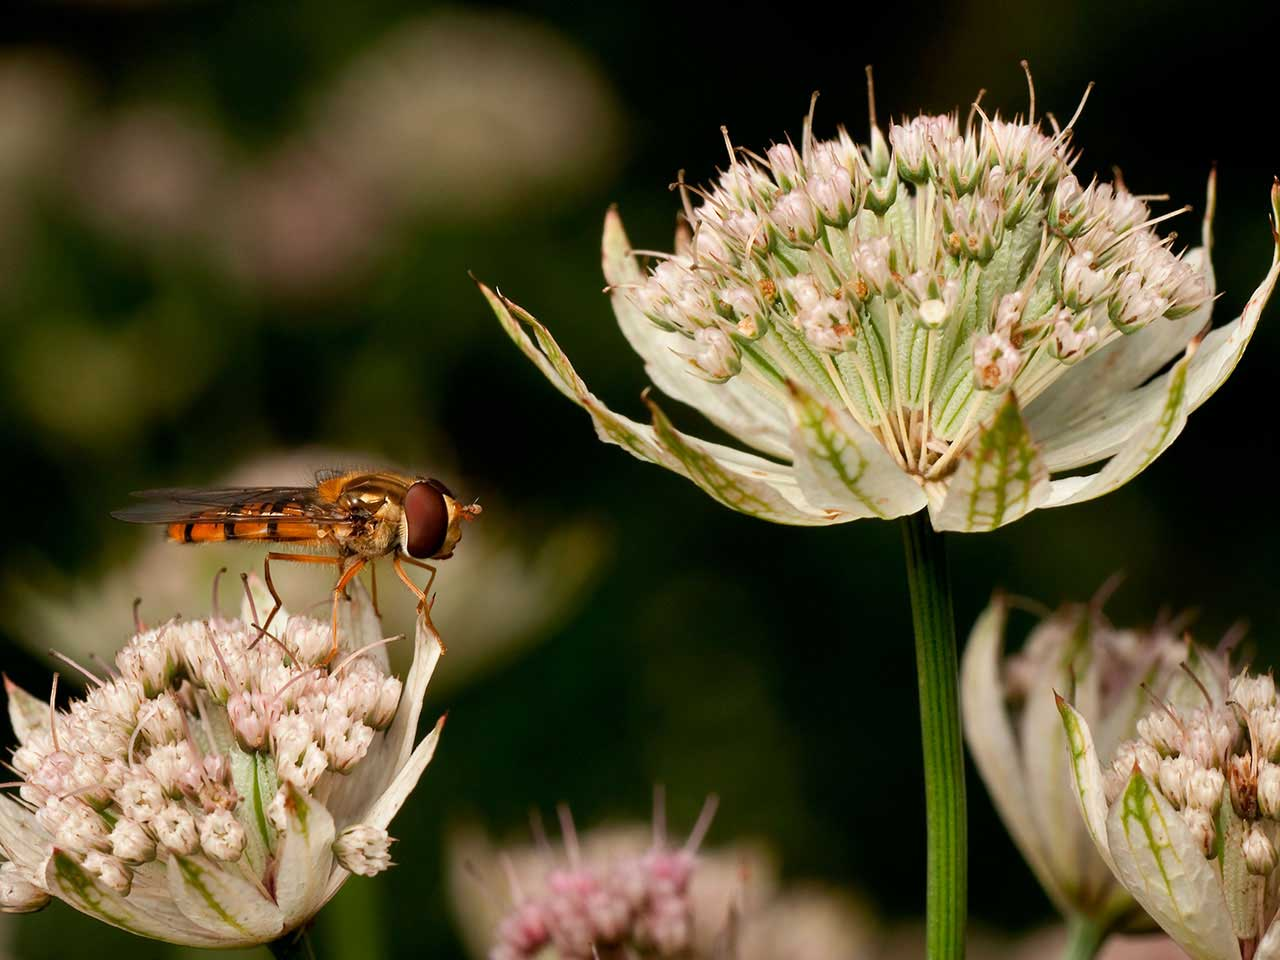 Hovverfly sitting on Astrantia flower